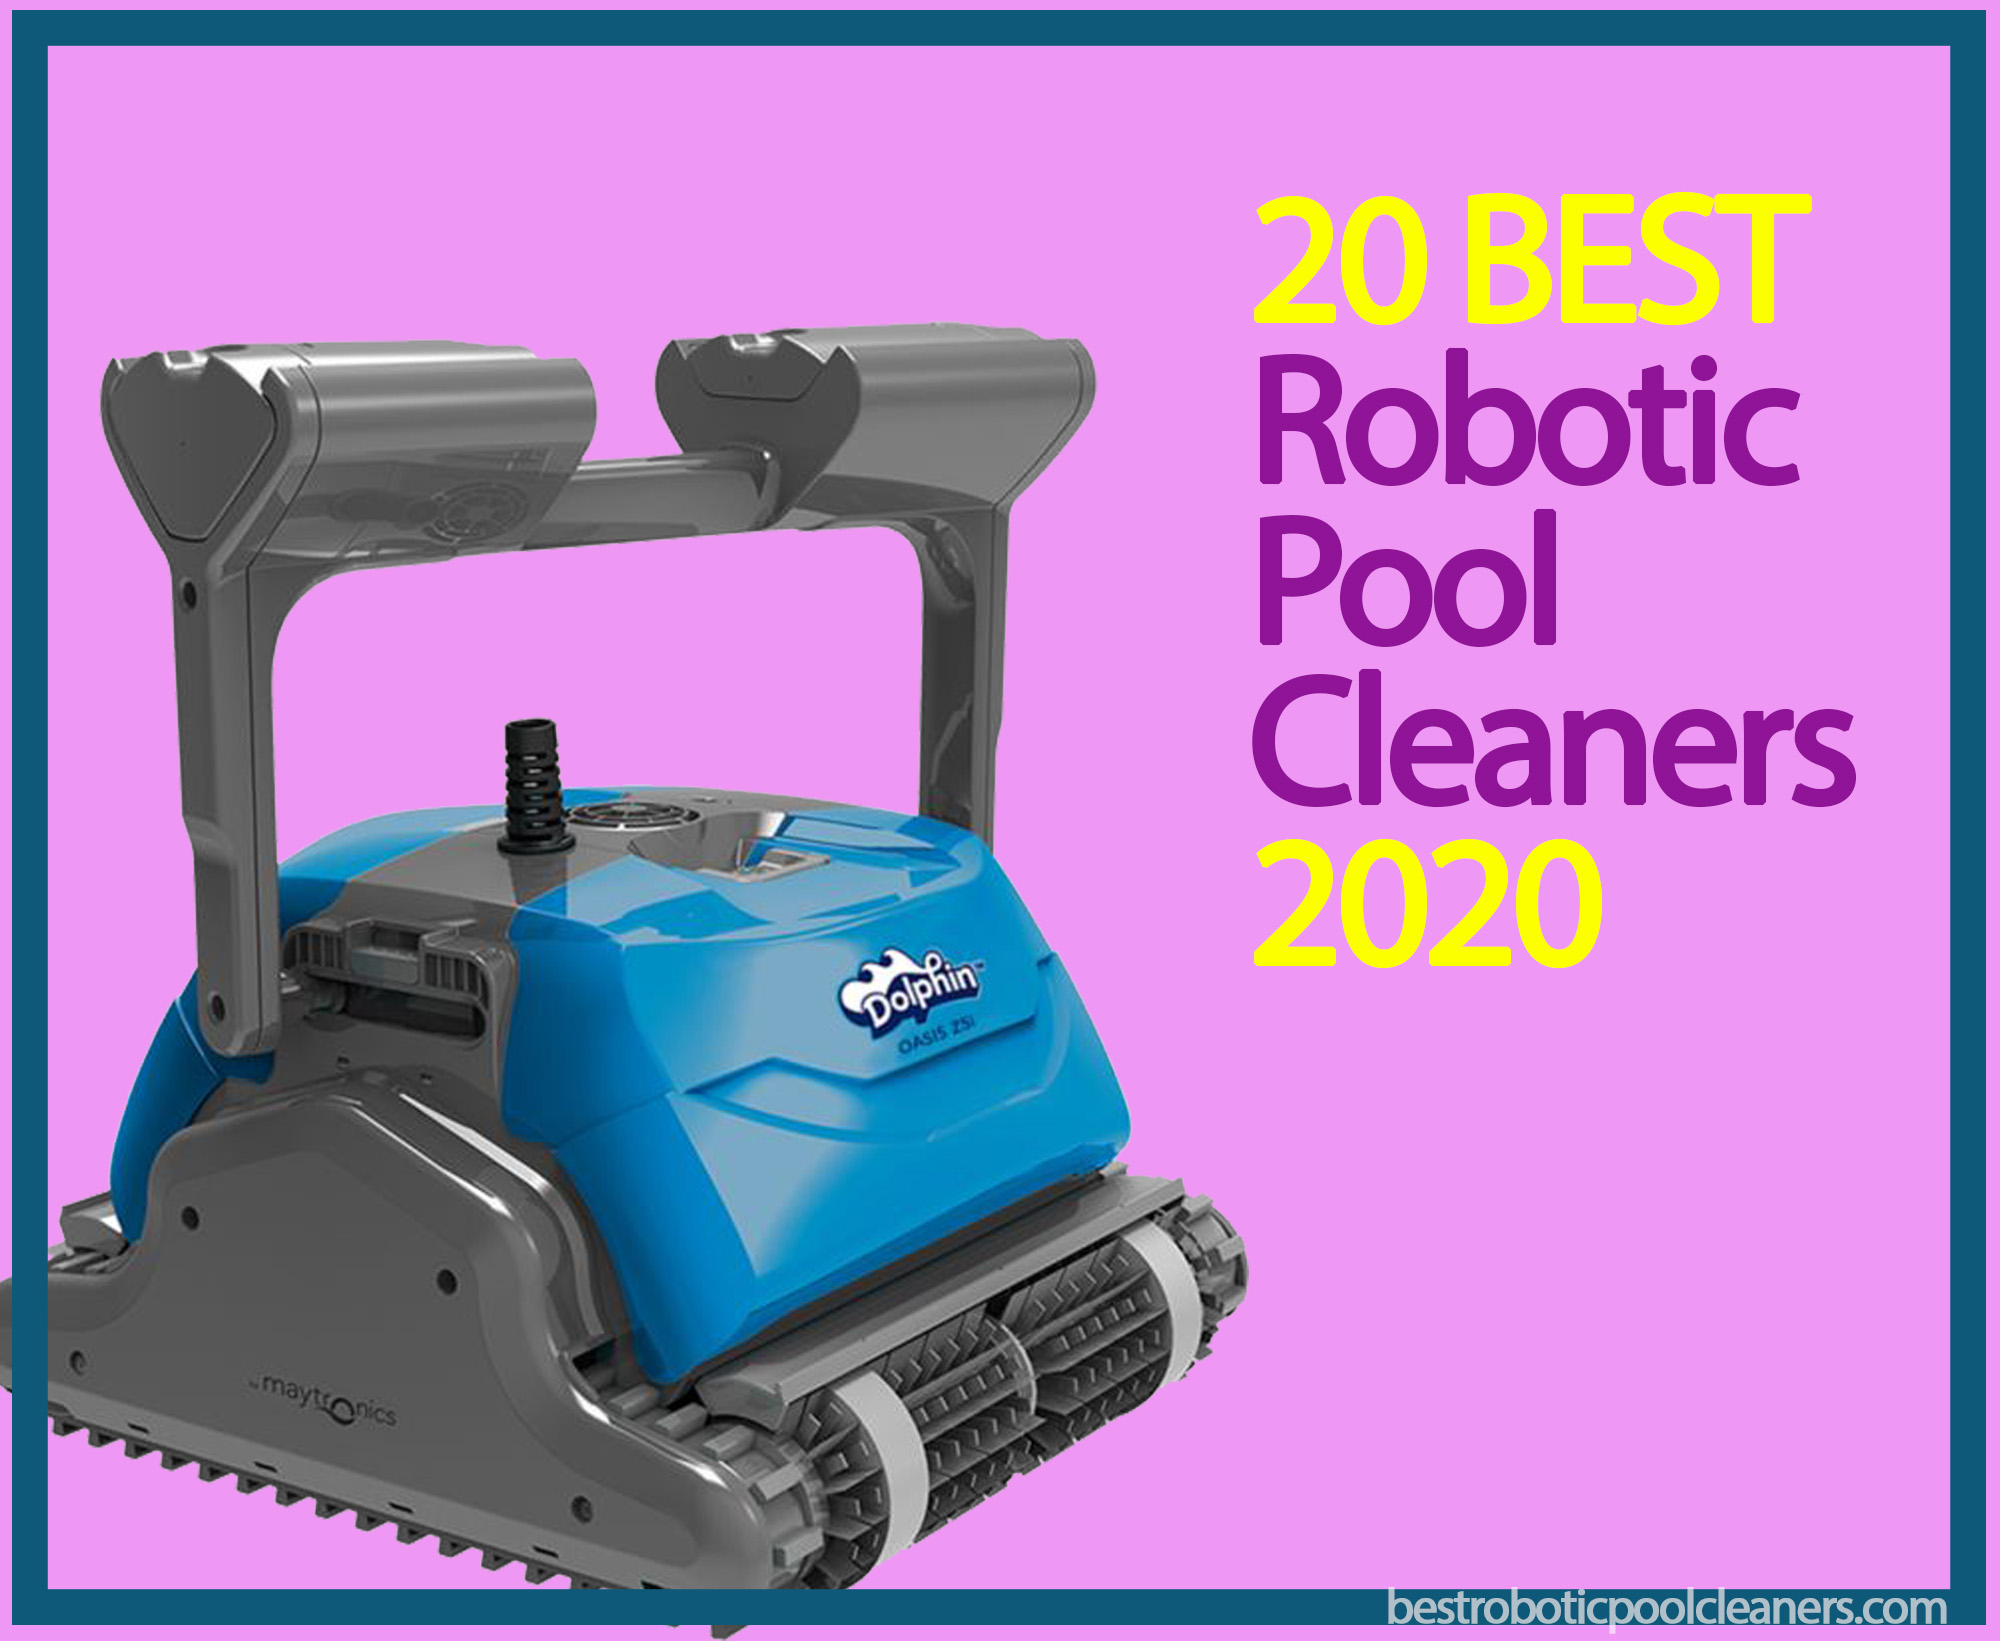 Best Android Cleaner 2020.20 Best Robotic Pool Cleaners For 2020 Best Robotic Pool